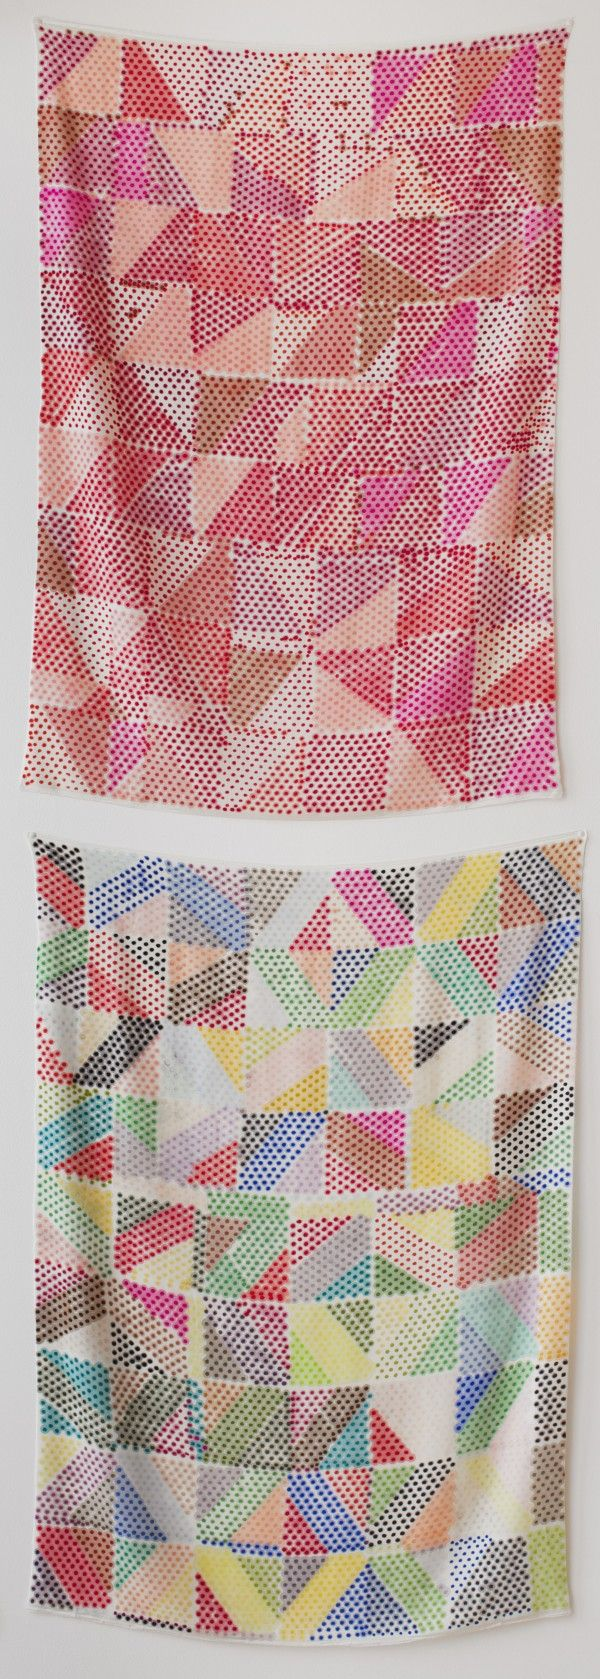 Beautiful Polly Apfelbaum At Clifton Benevento (Contemporary Art Daily). Geometric  PrintsGeometric PatternsAbstract ... Pictures Gallery